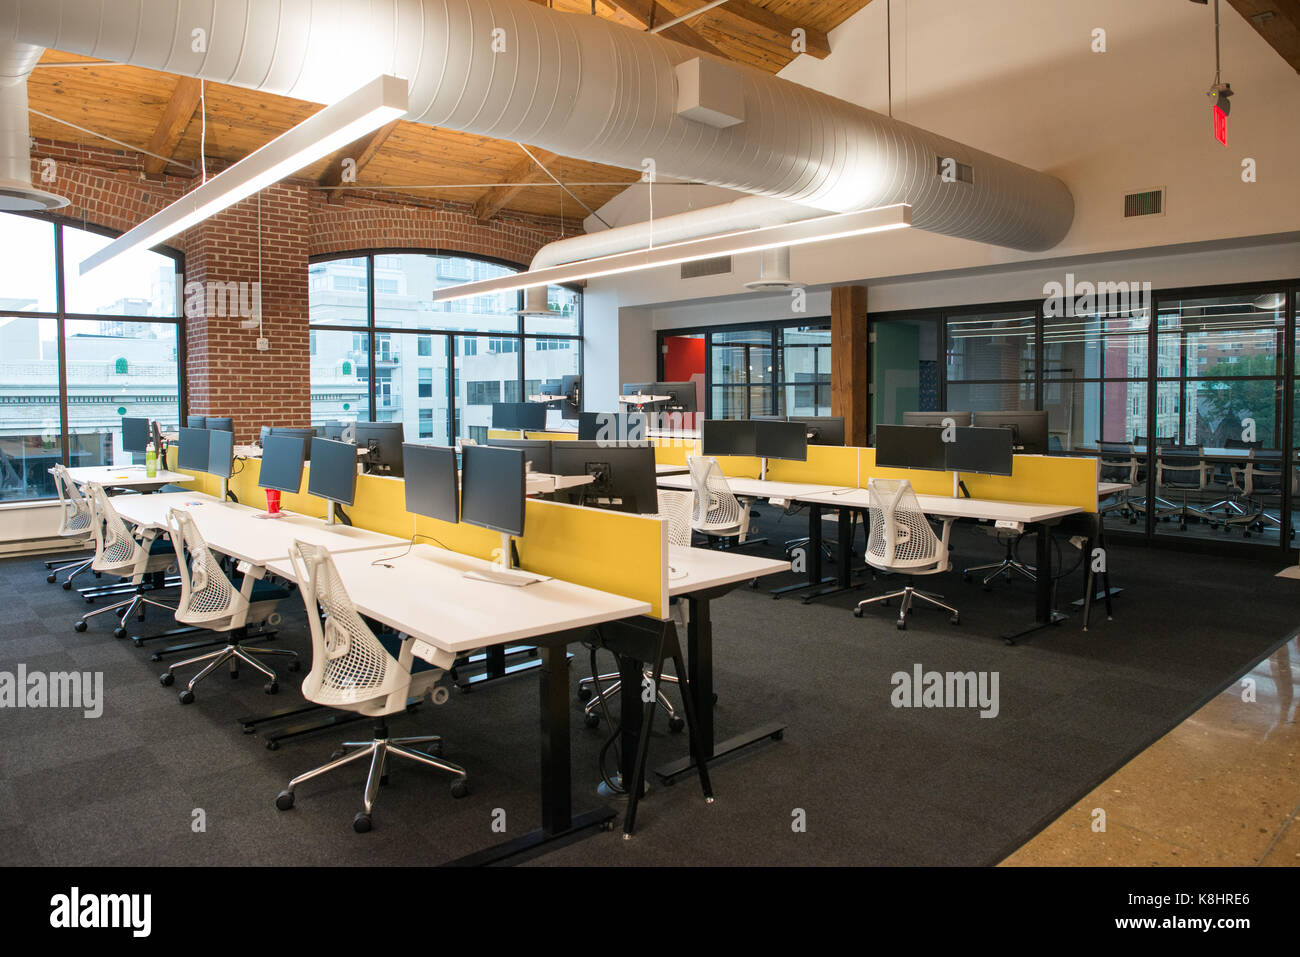 High Quality Trendy Modern Open Concept Loft Office Space With Big Windows, Natural  Light And A Layout To Encourage Collaboration, Creativity And Innovation